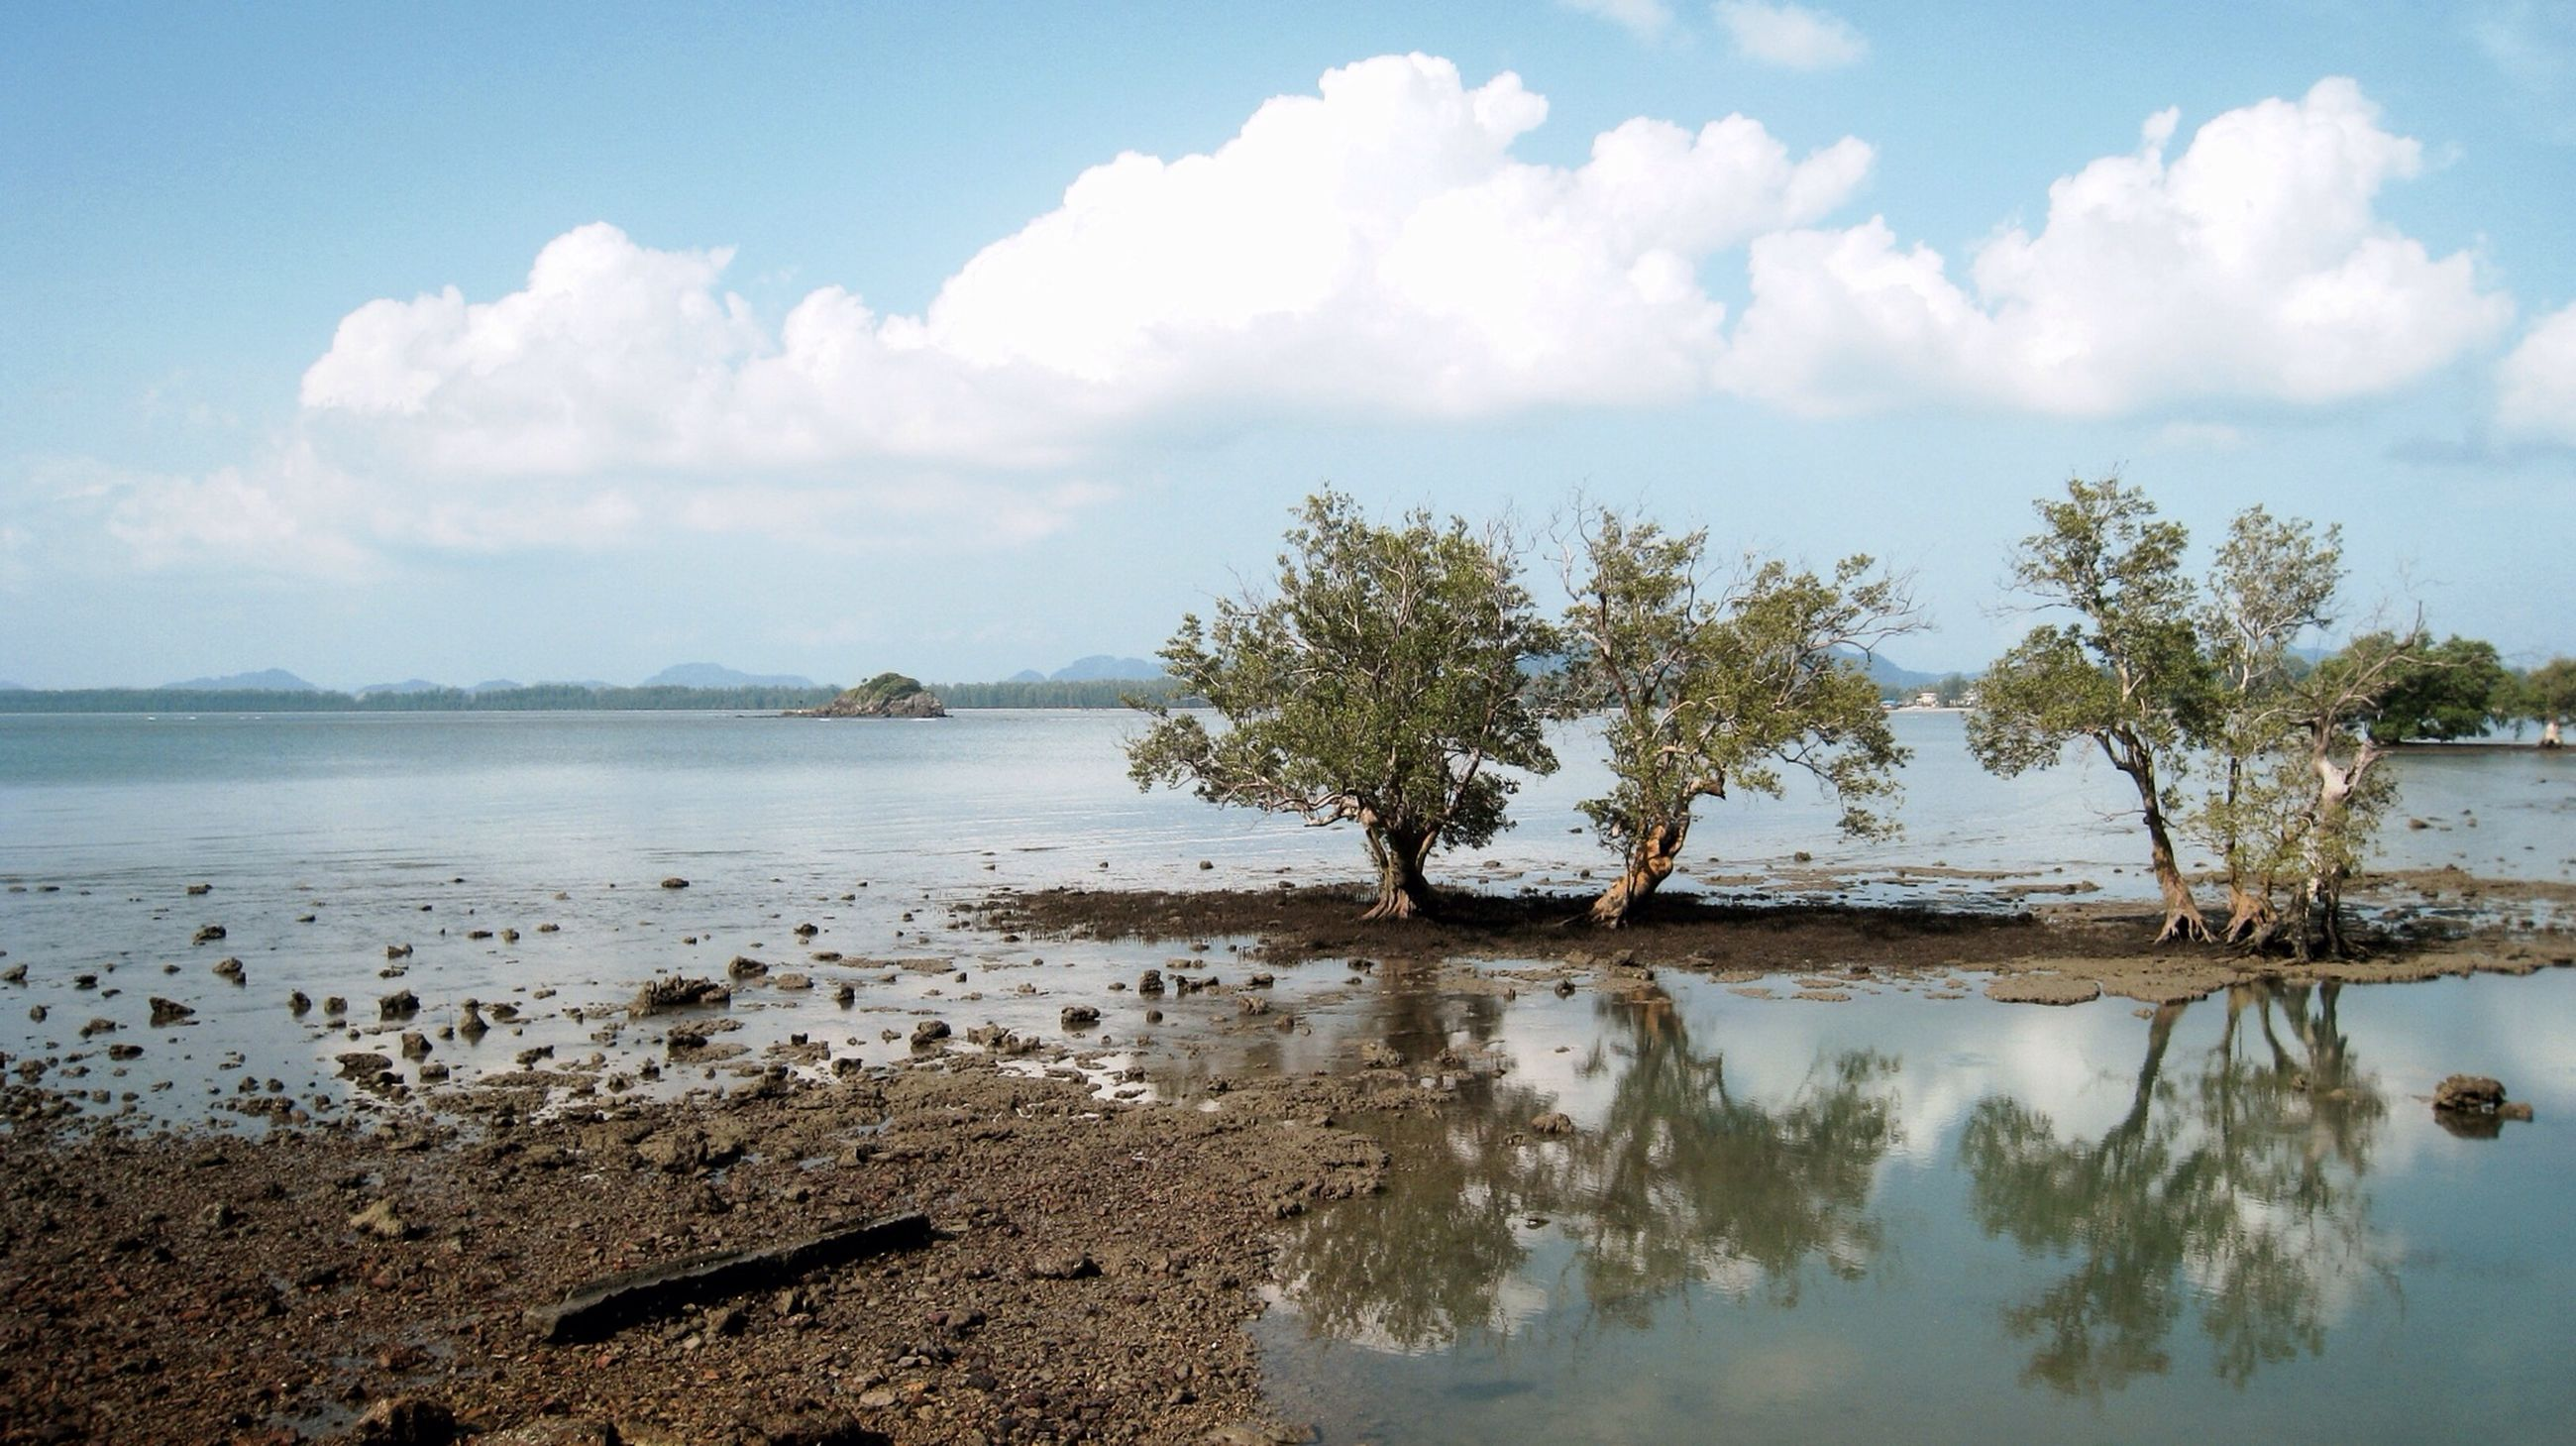 water, sky, tranquil scene, tranquility, tree, scenics, reflection, cloud - sky, beauty in nature, nature, lake, cloud, beach, sea, calm, idyllic, shore, day, blue, waterfront